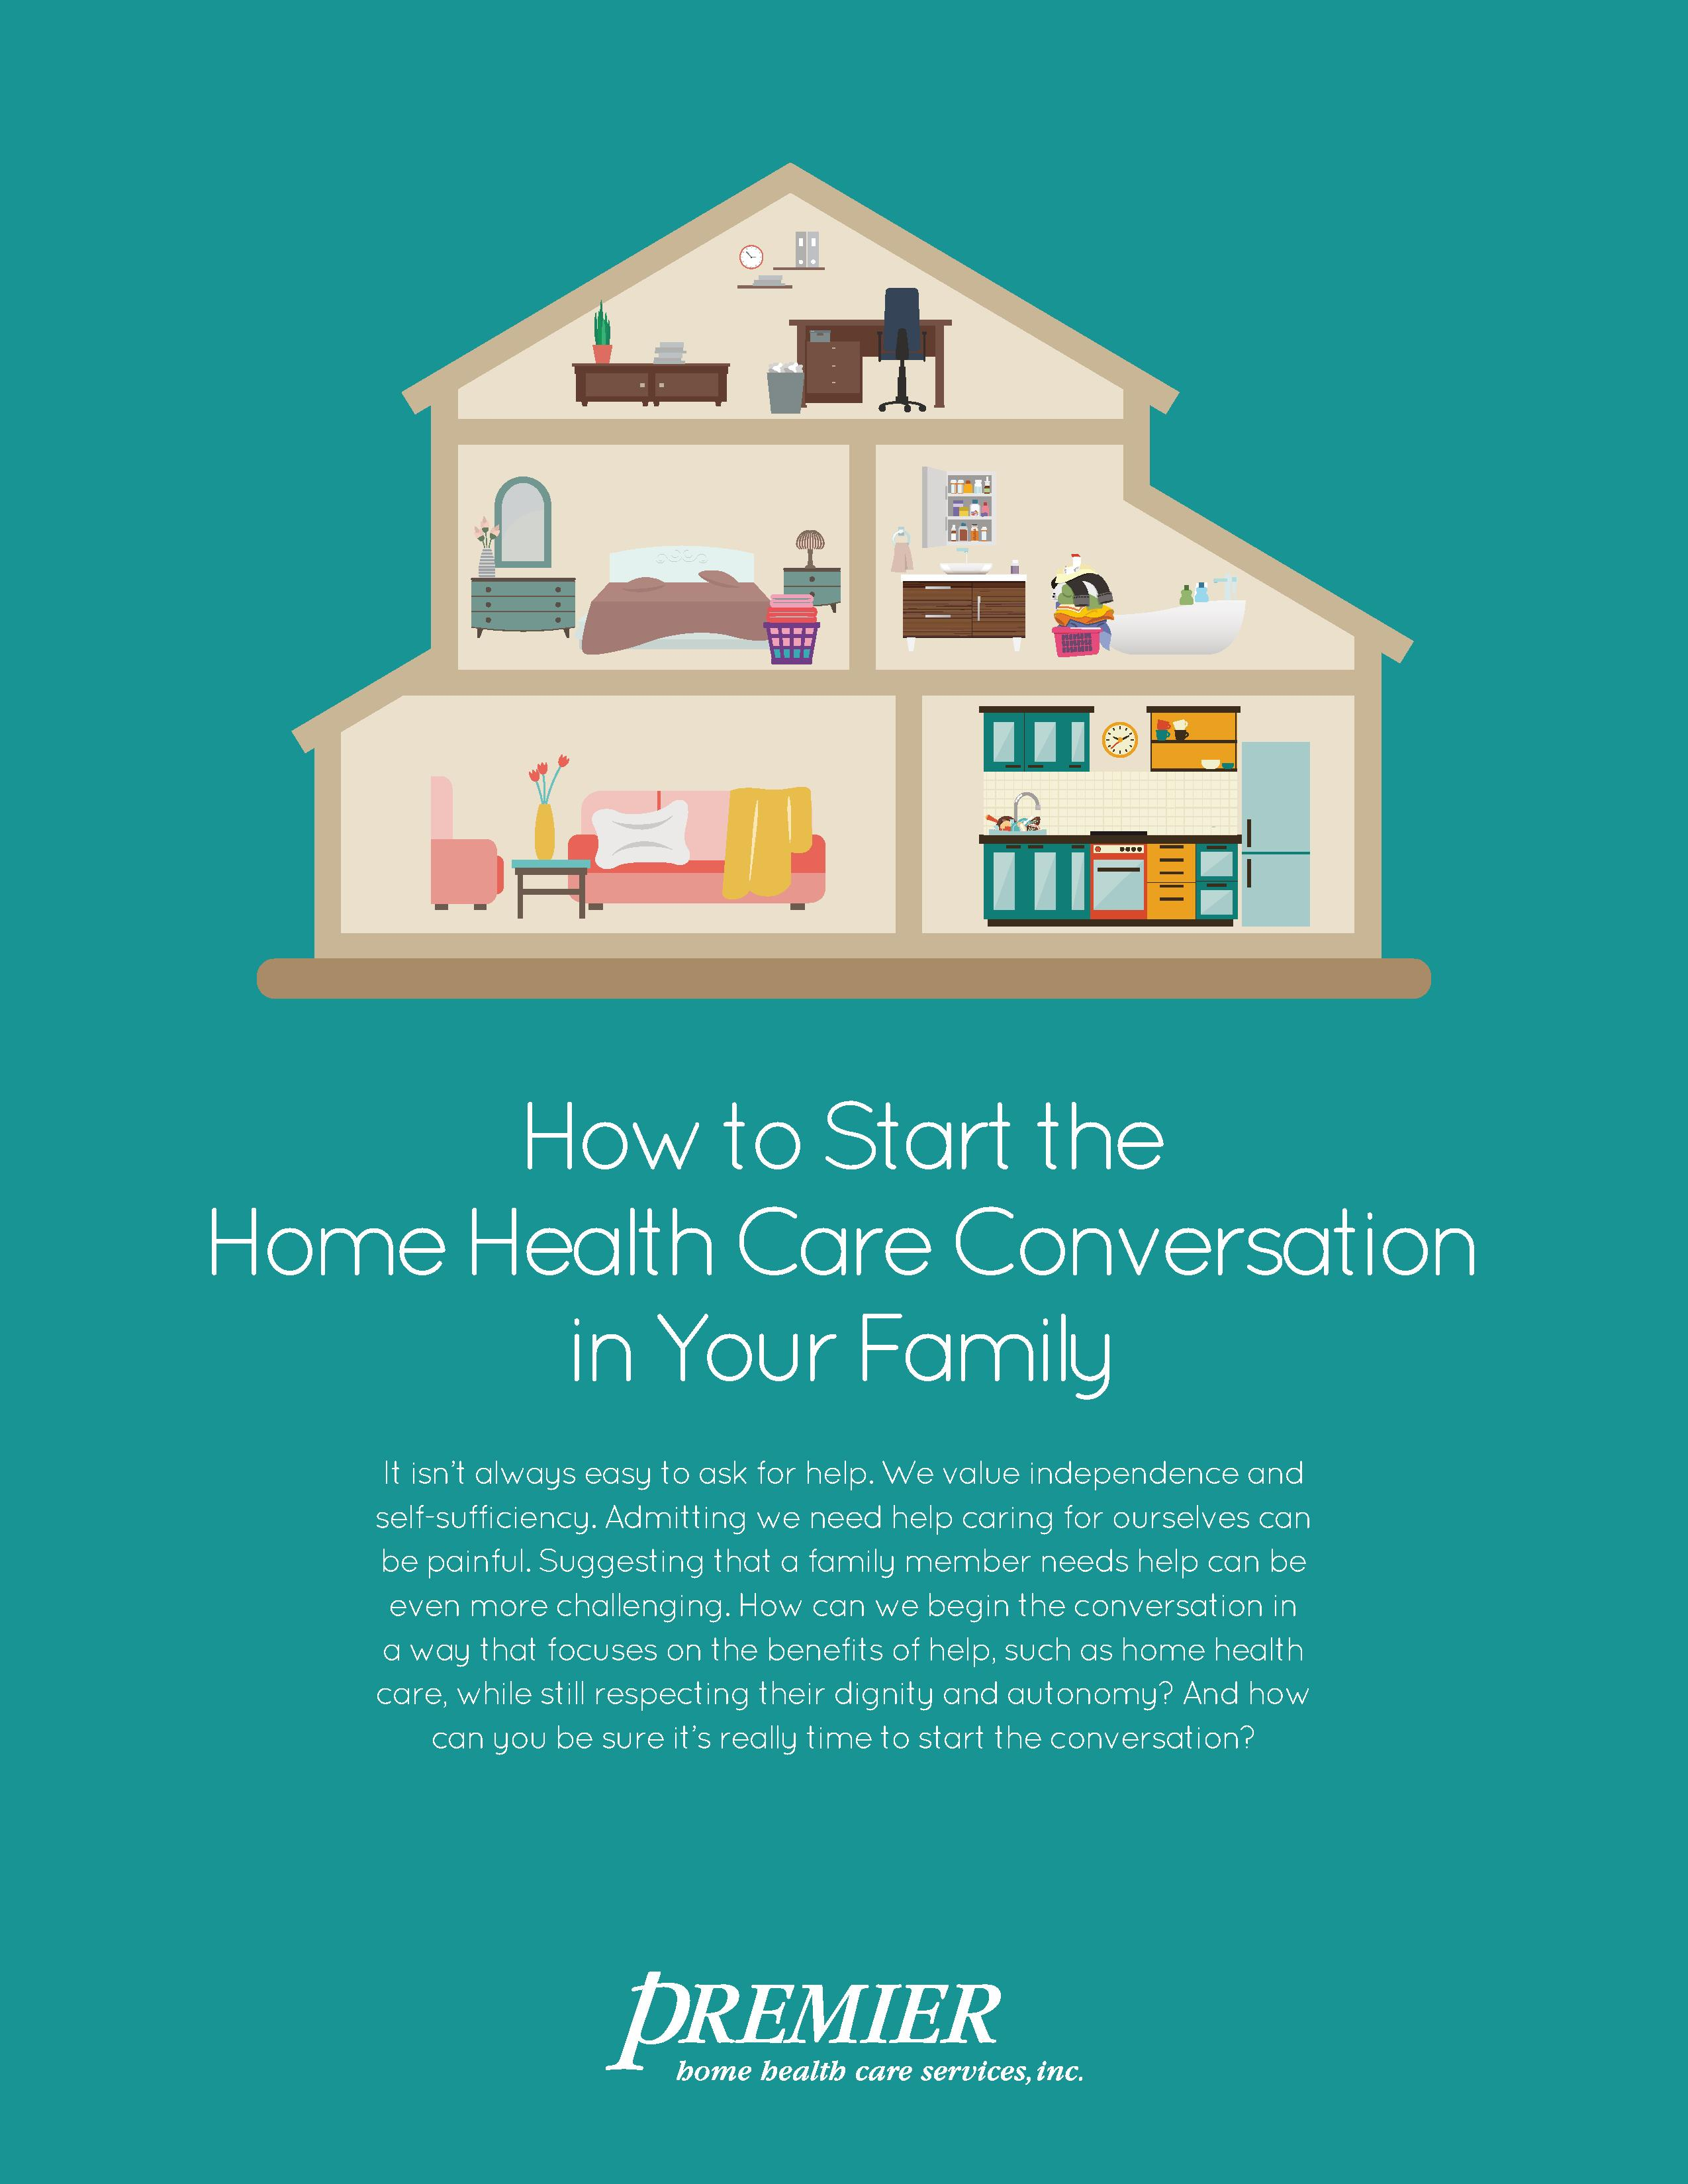 How to Start the Home Health Care Conversation in Your Family